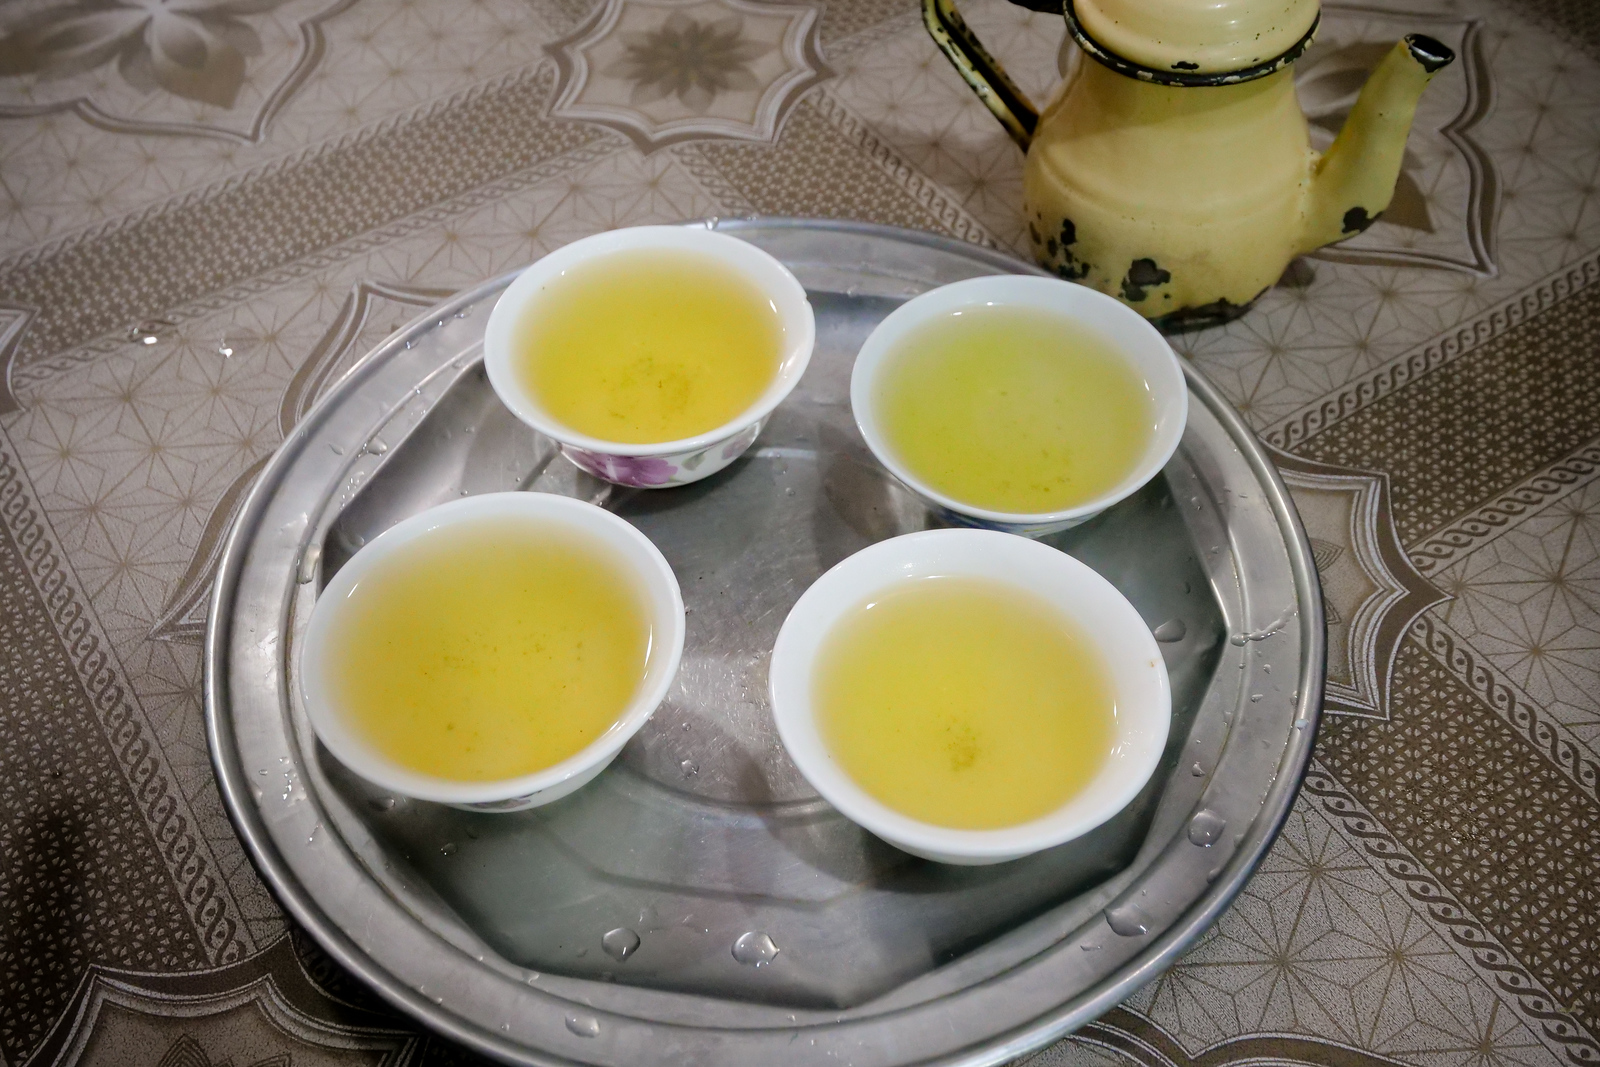 Peshawari green tea